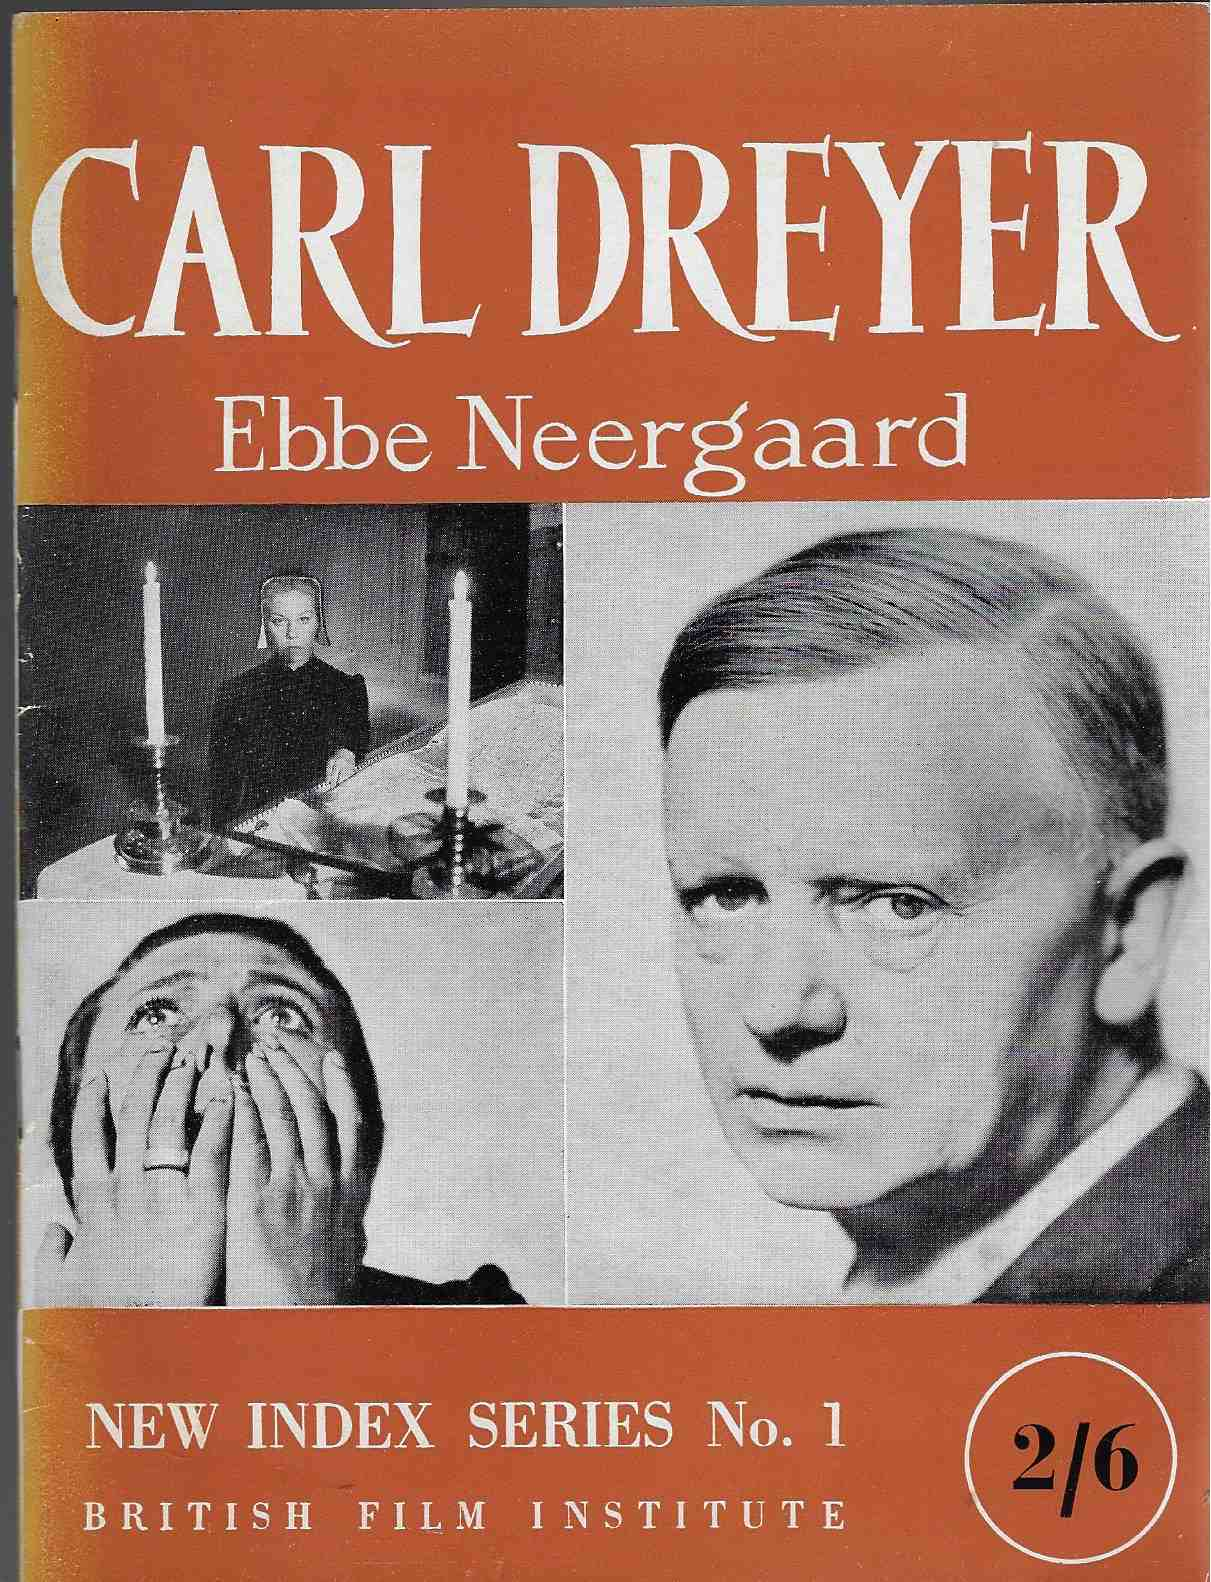 Image for Carl Dreyer A Film Director's Work